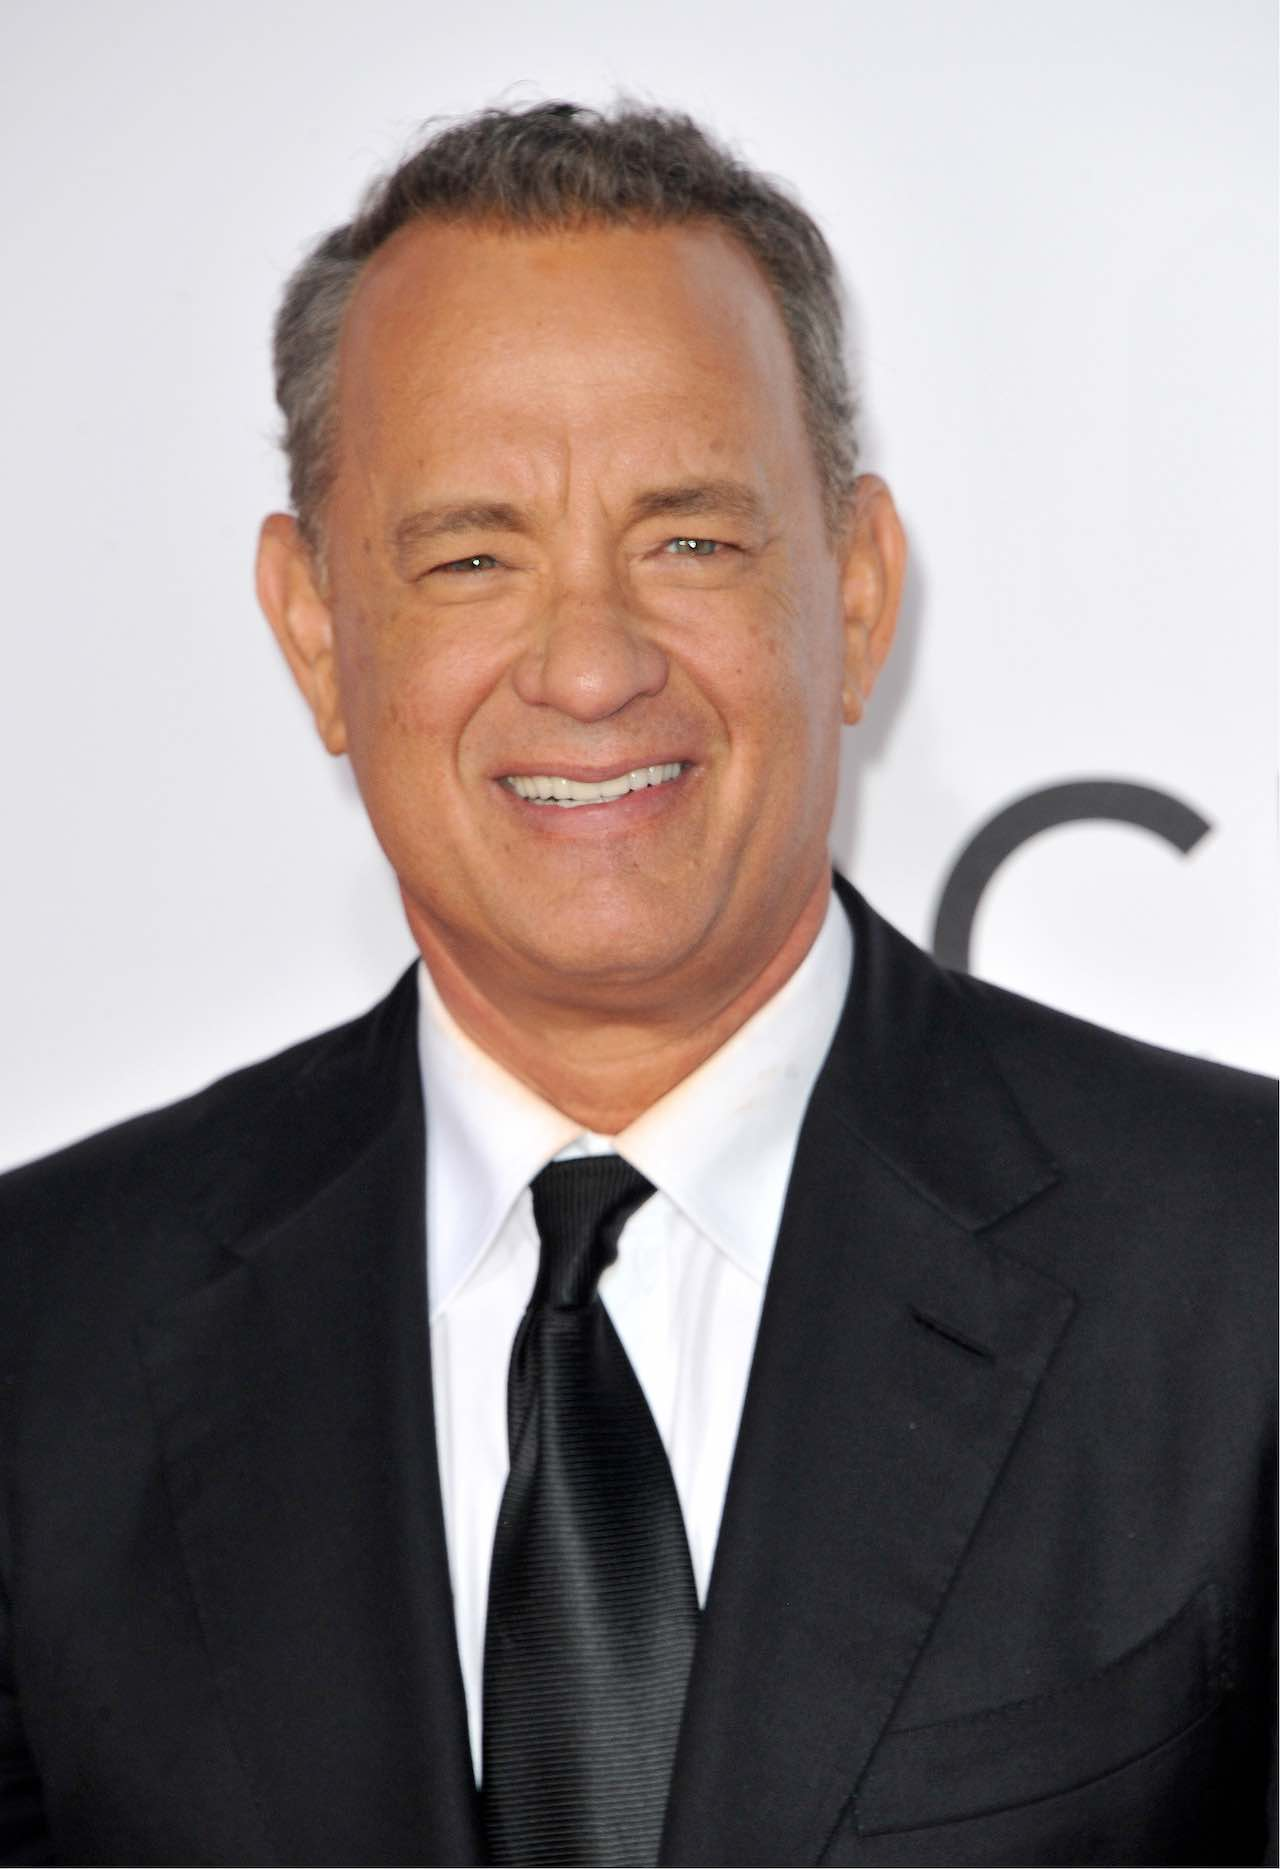 Tom Hanks at the People's Choice Awards 2017